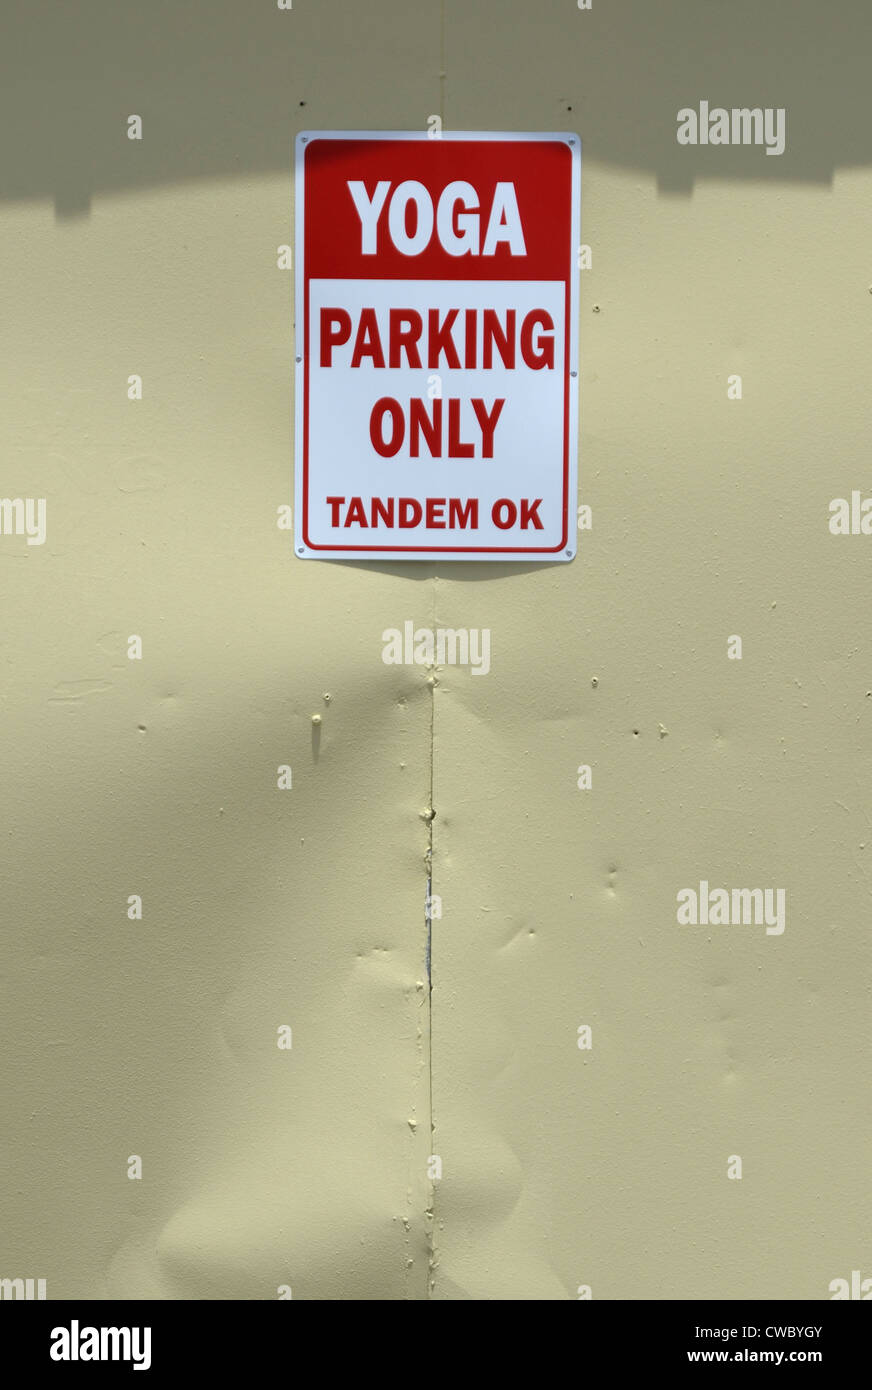 Yoga Studio Parking SIgn Stock Photo